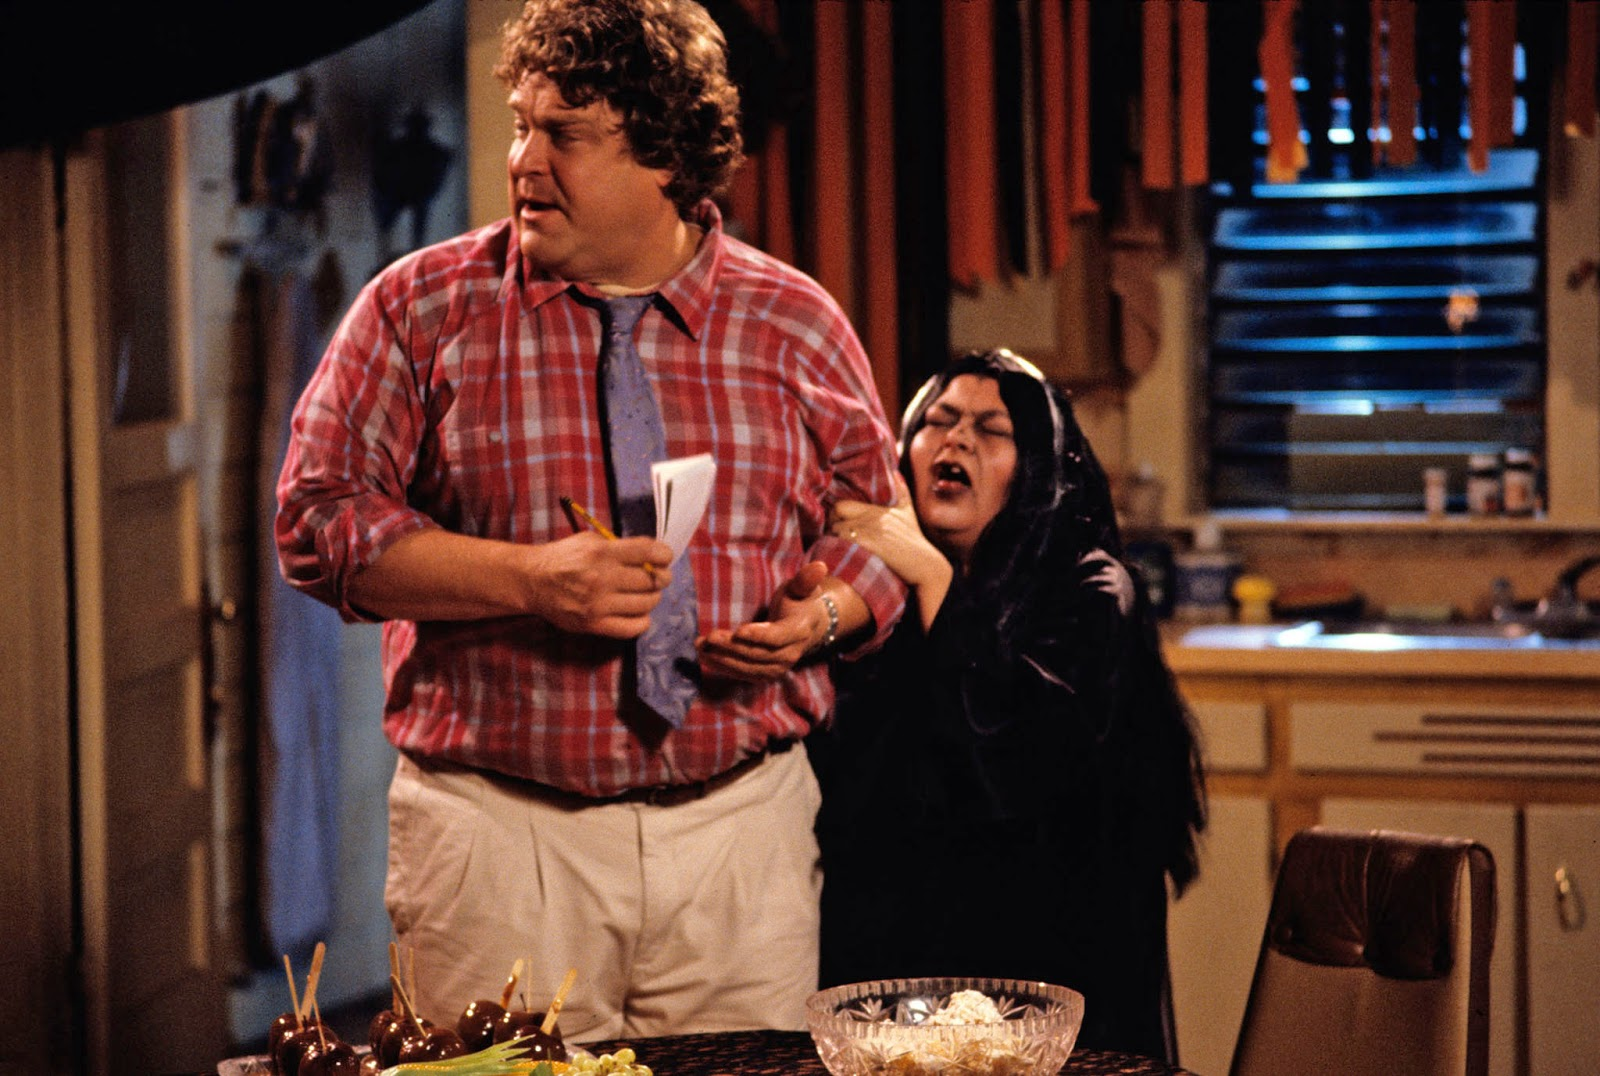 31 Days of Halloween Episodes: Boo! (Roseanne) - Pop Culture Spin